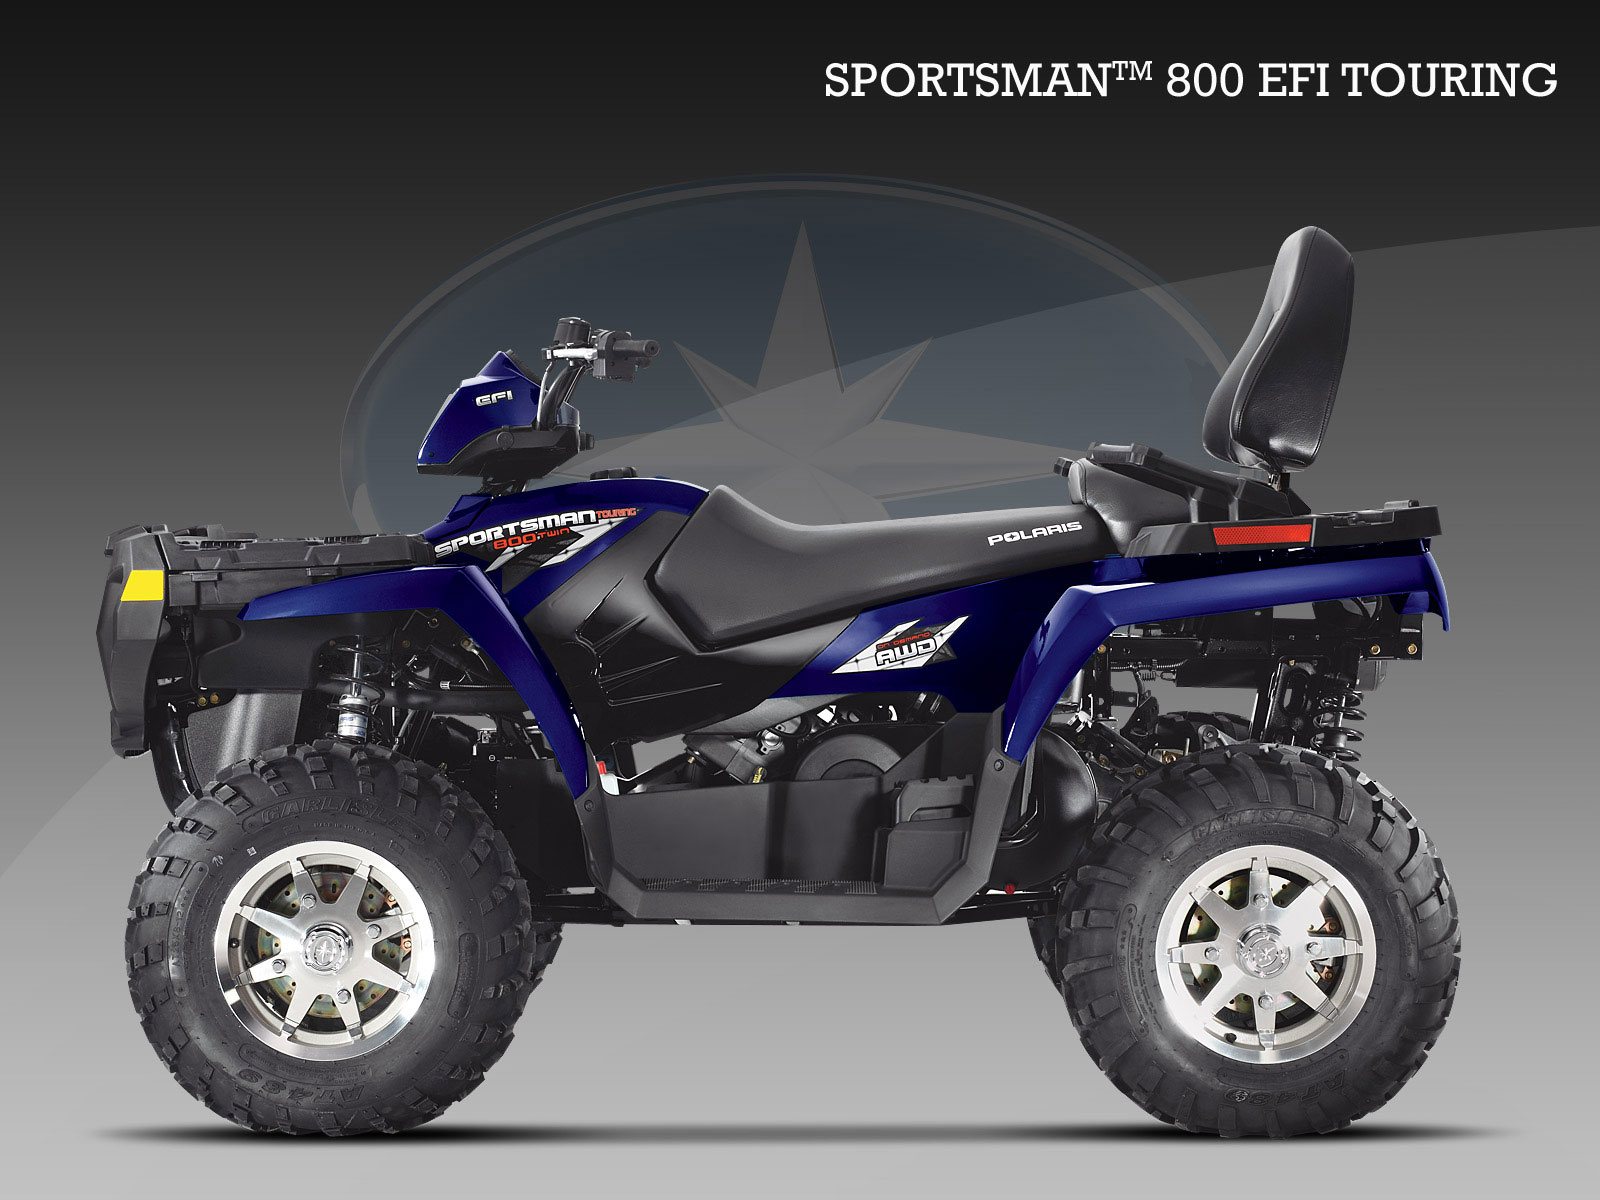 polaris sportsman 800 efi touring specs 2008 2009 autoevolution. Black Bedroom Furniture Sets. Home Design Ideas